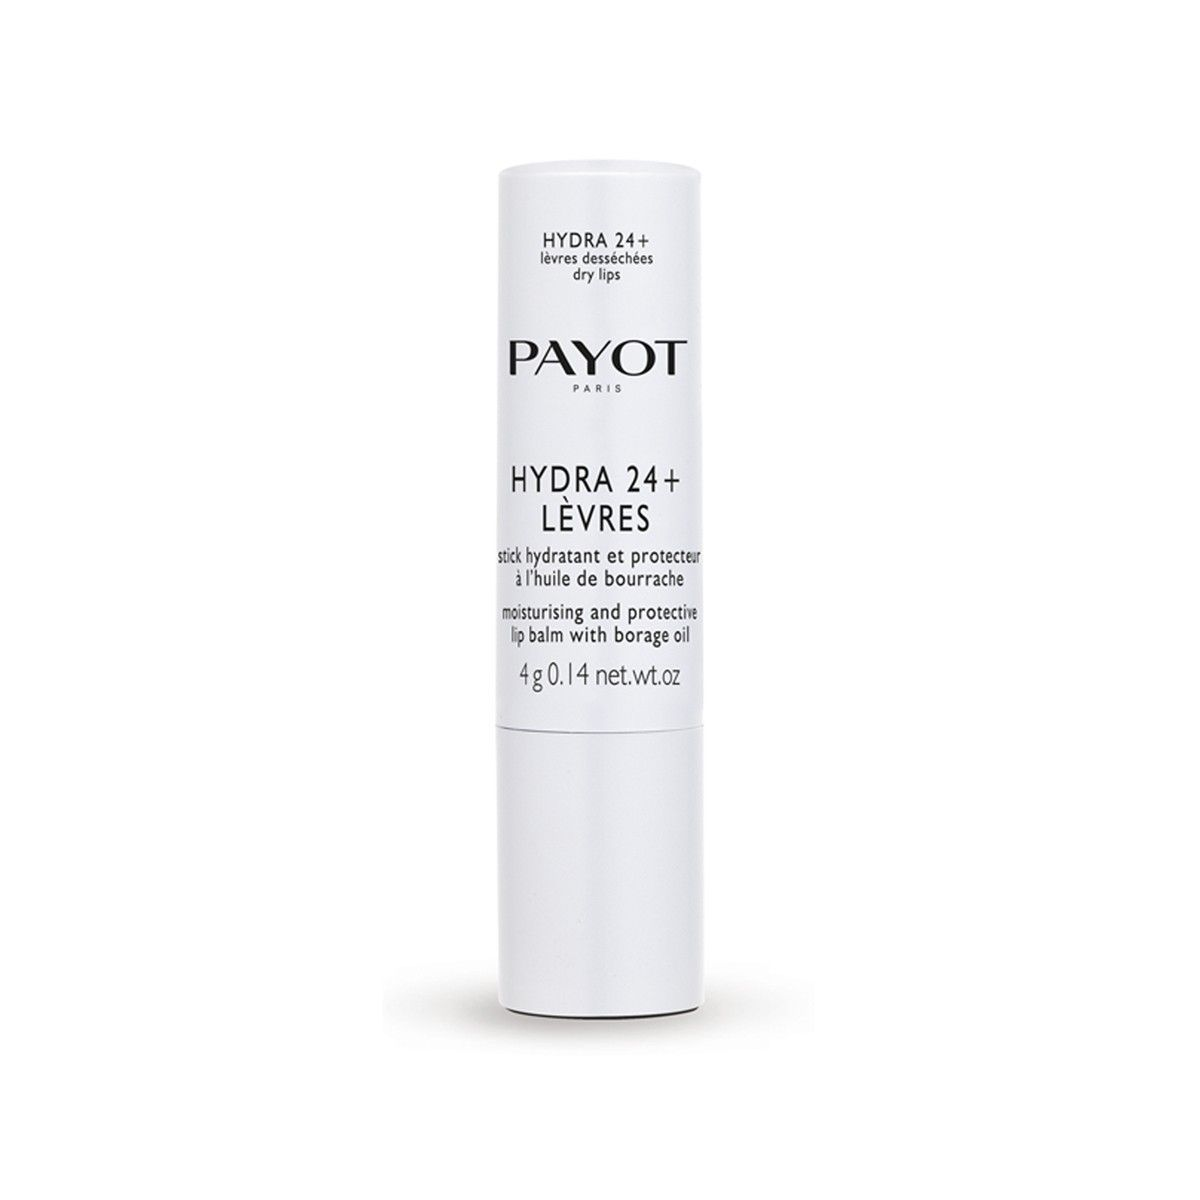 Payot Hydra 24+ Lèvres - 10% korting code BEAUTY